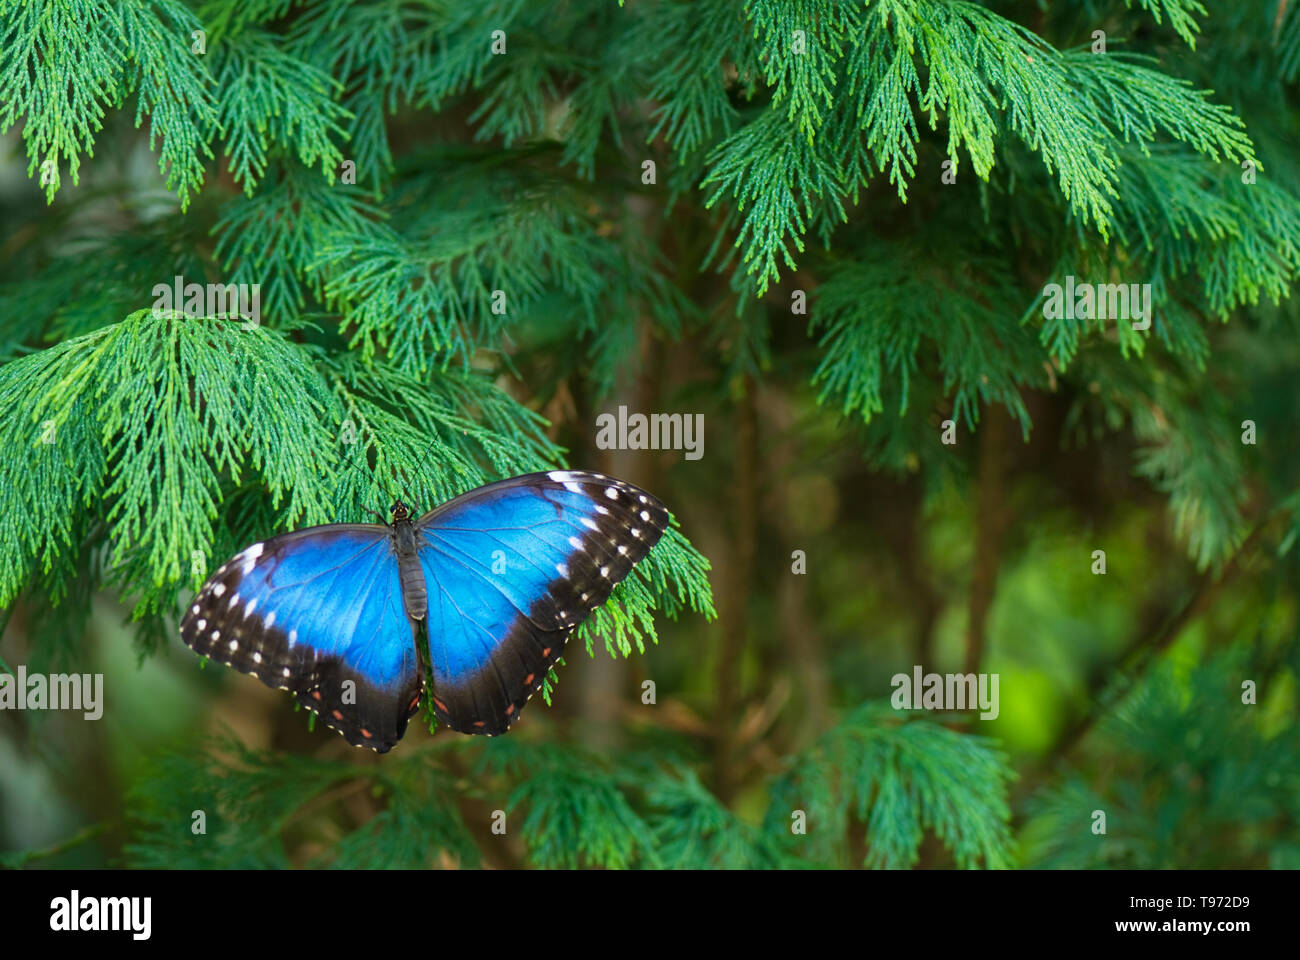 Peleides Blue Morpho butterfly (Morpho peleides) resting on cypress branch. Selective focus and shallow depth of field. - Stock Image